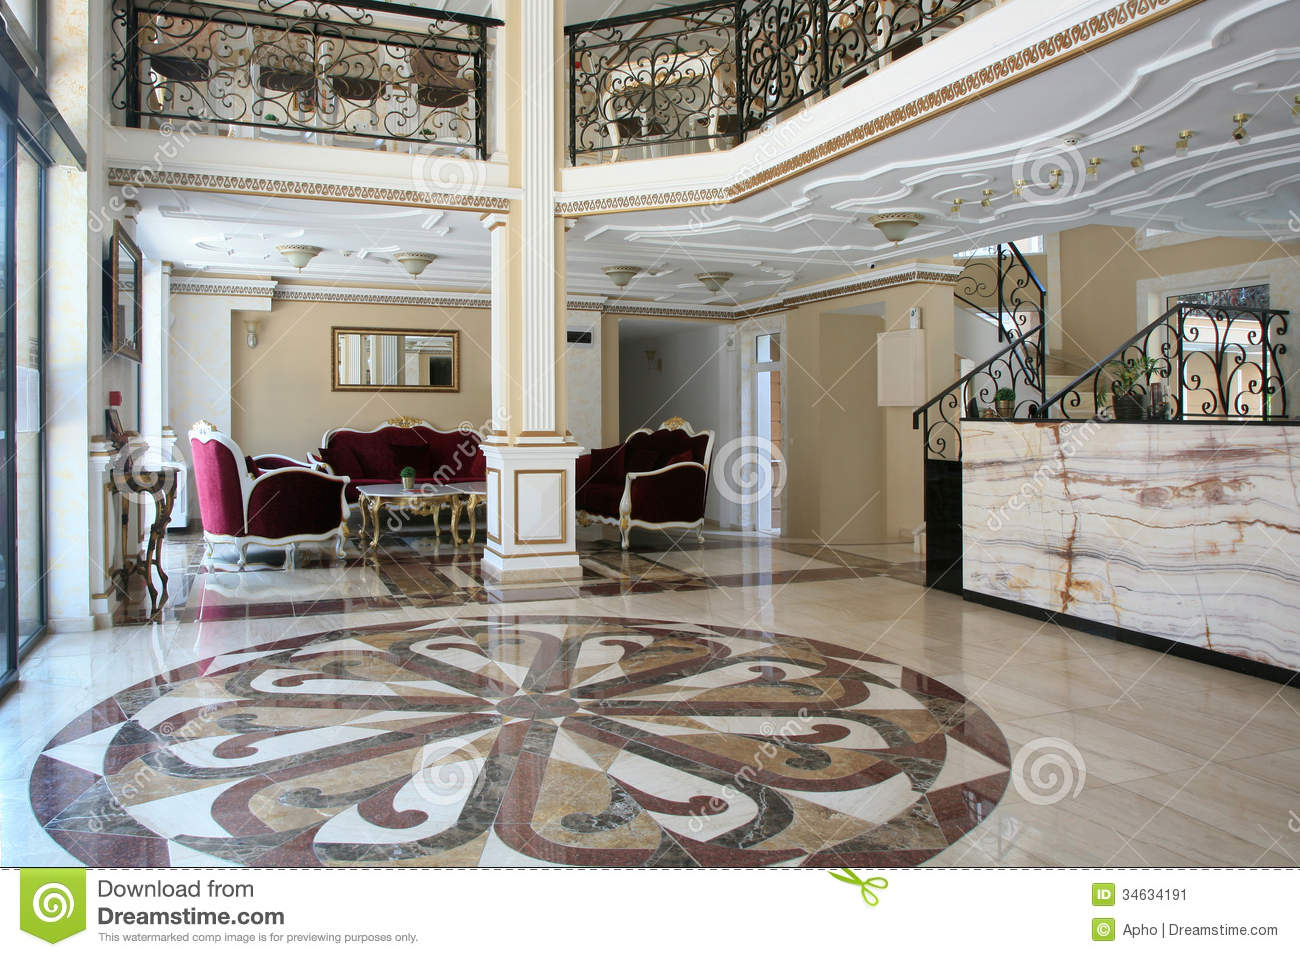 home design plans free download with Stock Image Baroque Style Hotel Interior Design Image34634191 on Royalty Free Stock Photography Environmentally Friendly Seal Image17677377 moreover Royalty Free Stock Photography Businessman Hanging Good Results Image29294757 in addition Stock Illustration Mortgage Icon Cartoon Illustration Showing House Surrounded Dollar Signs Word Image44475824 likewise Stock Image Baroque Style Hotel Interior Design Image34634191 likewise Waterski Hand Signals.